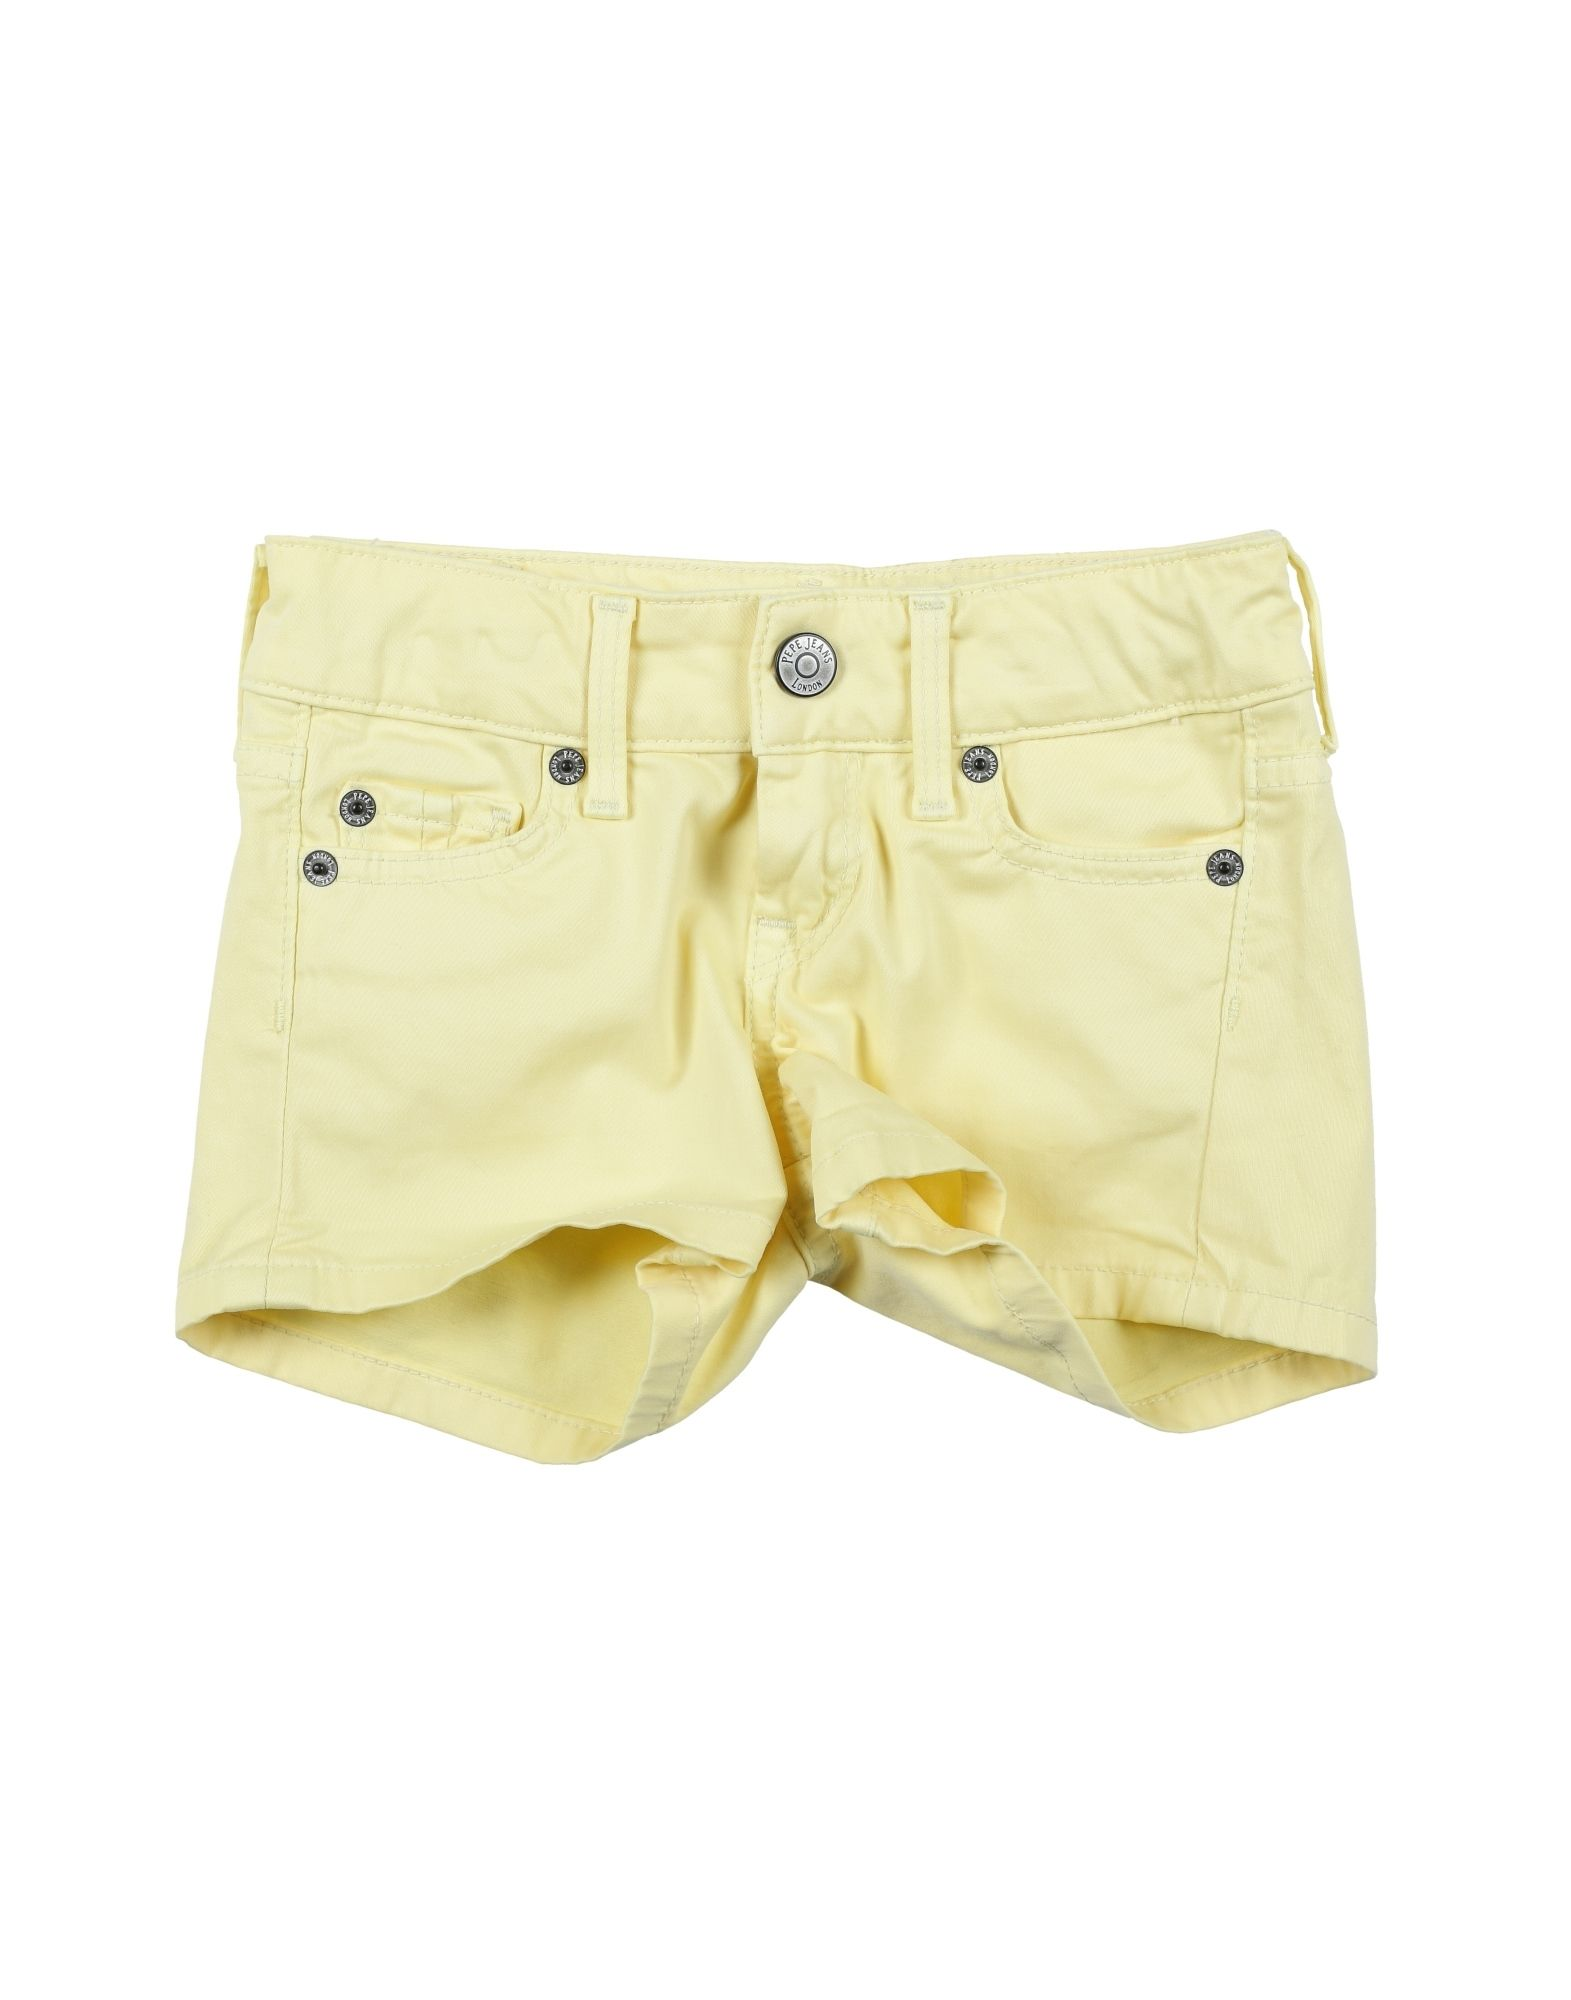 Pepe Jeans Kids' Shorts In Yellow